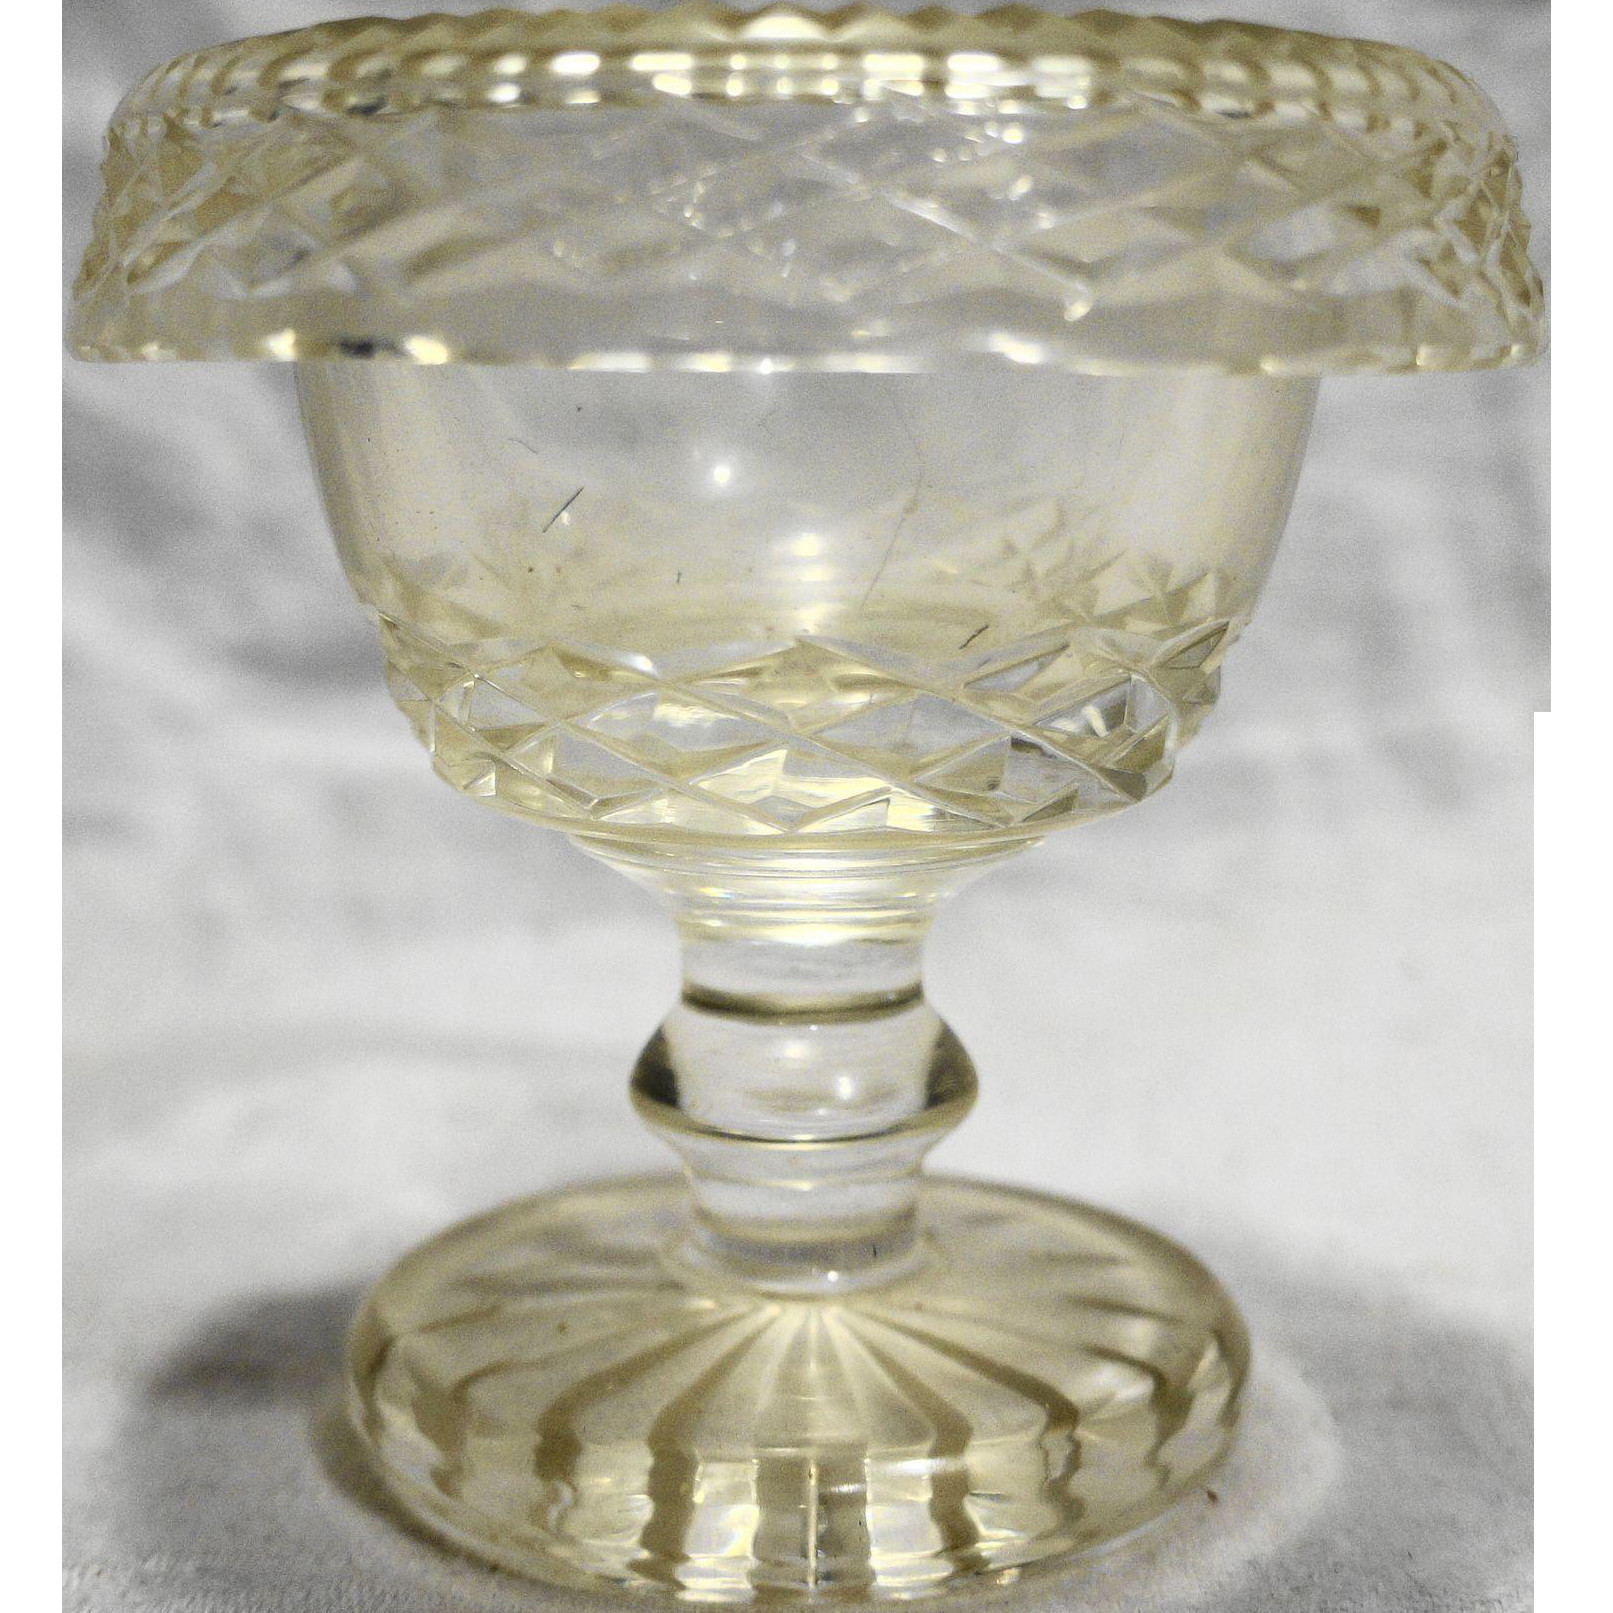 large waterford vase of waterford crystal master salt rolled rim 3 5 8 in waterford in waterford crystal master salt rolled rim 3 5 8 in